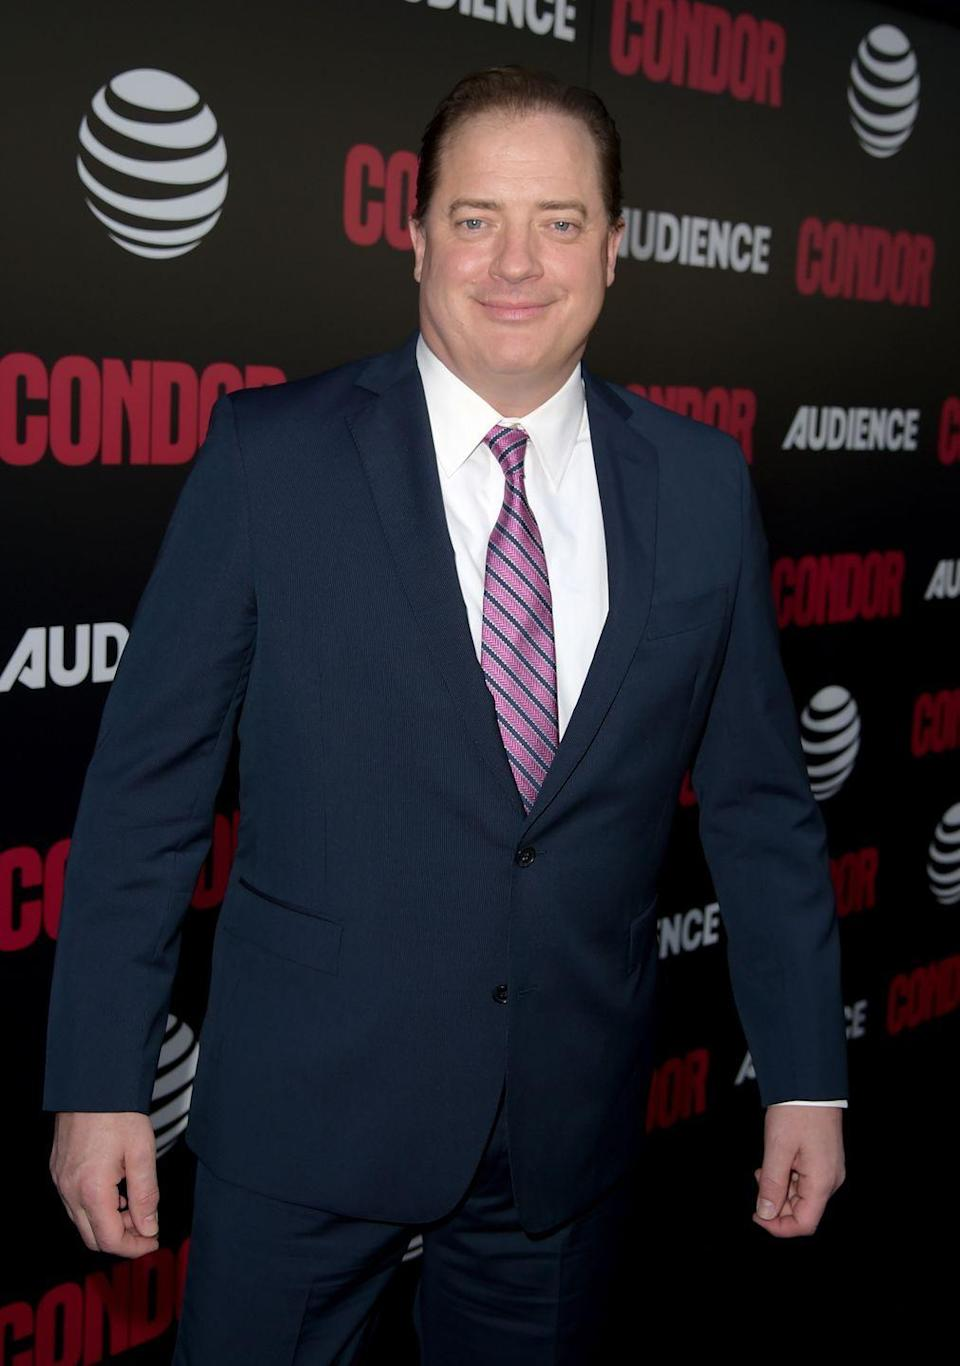 <p>Although still working in Hollywood, Fraser's career is no longer what it once was. He has had a few small roles on TV shows like <em>The Affair</em> and <em>Trust</em>. </p>